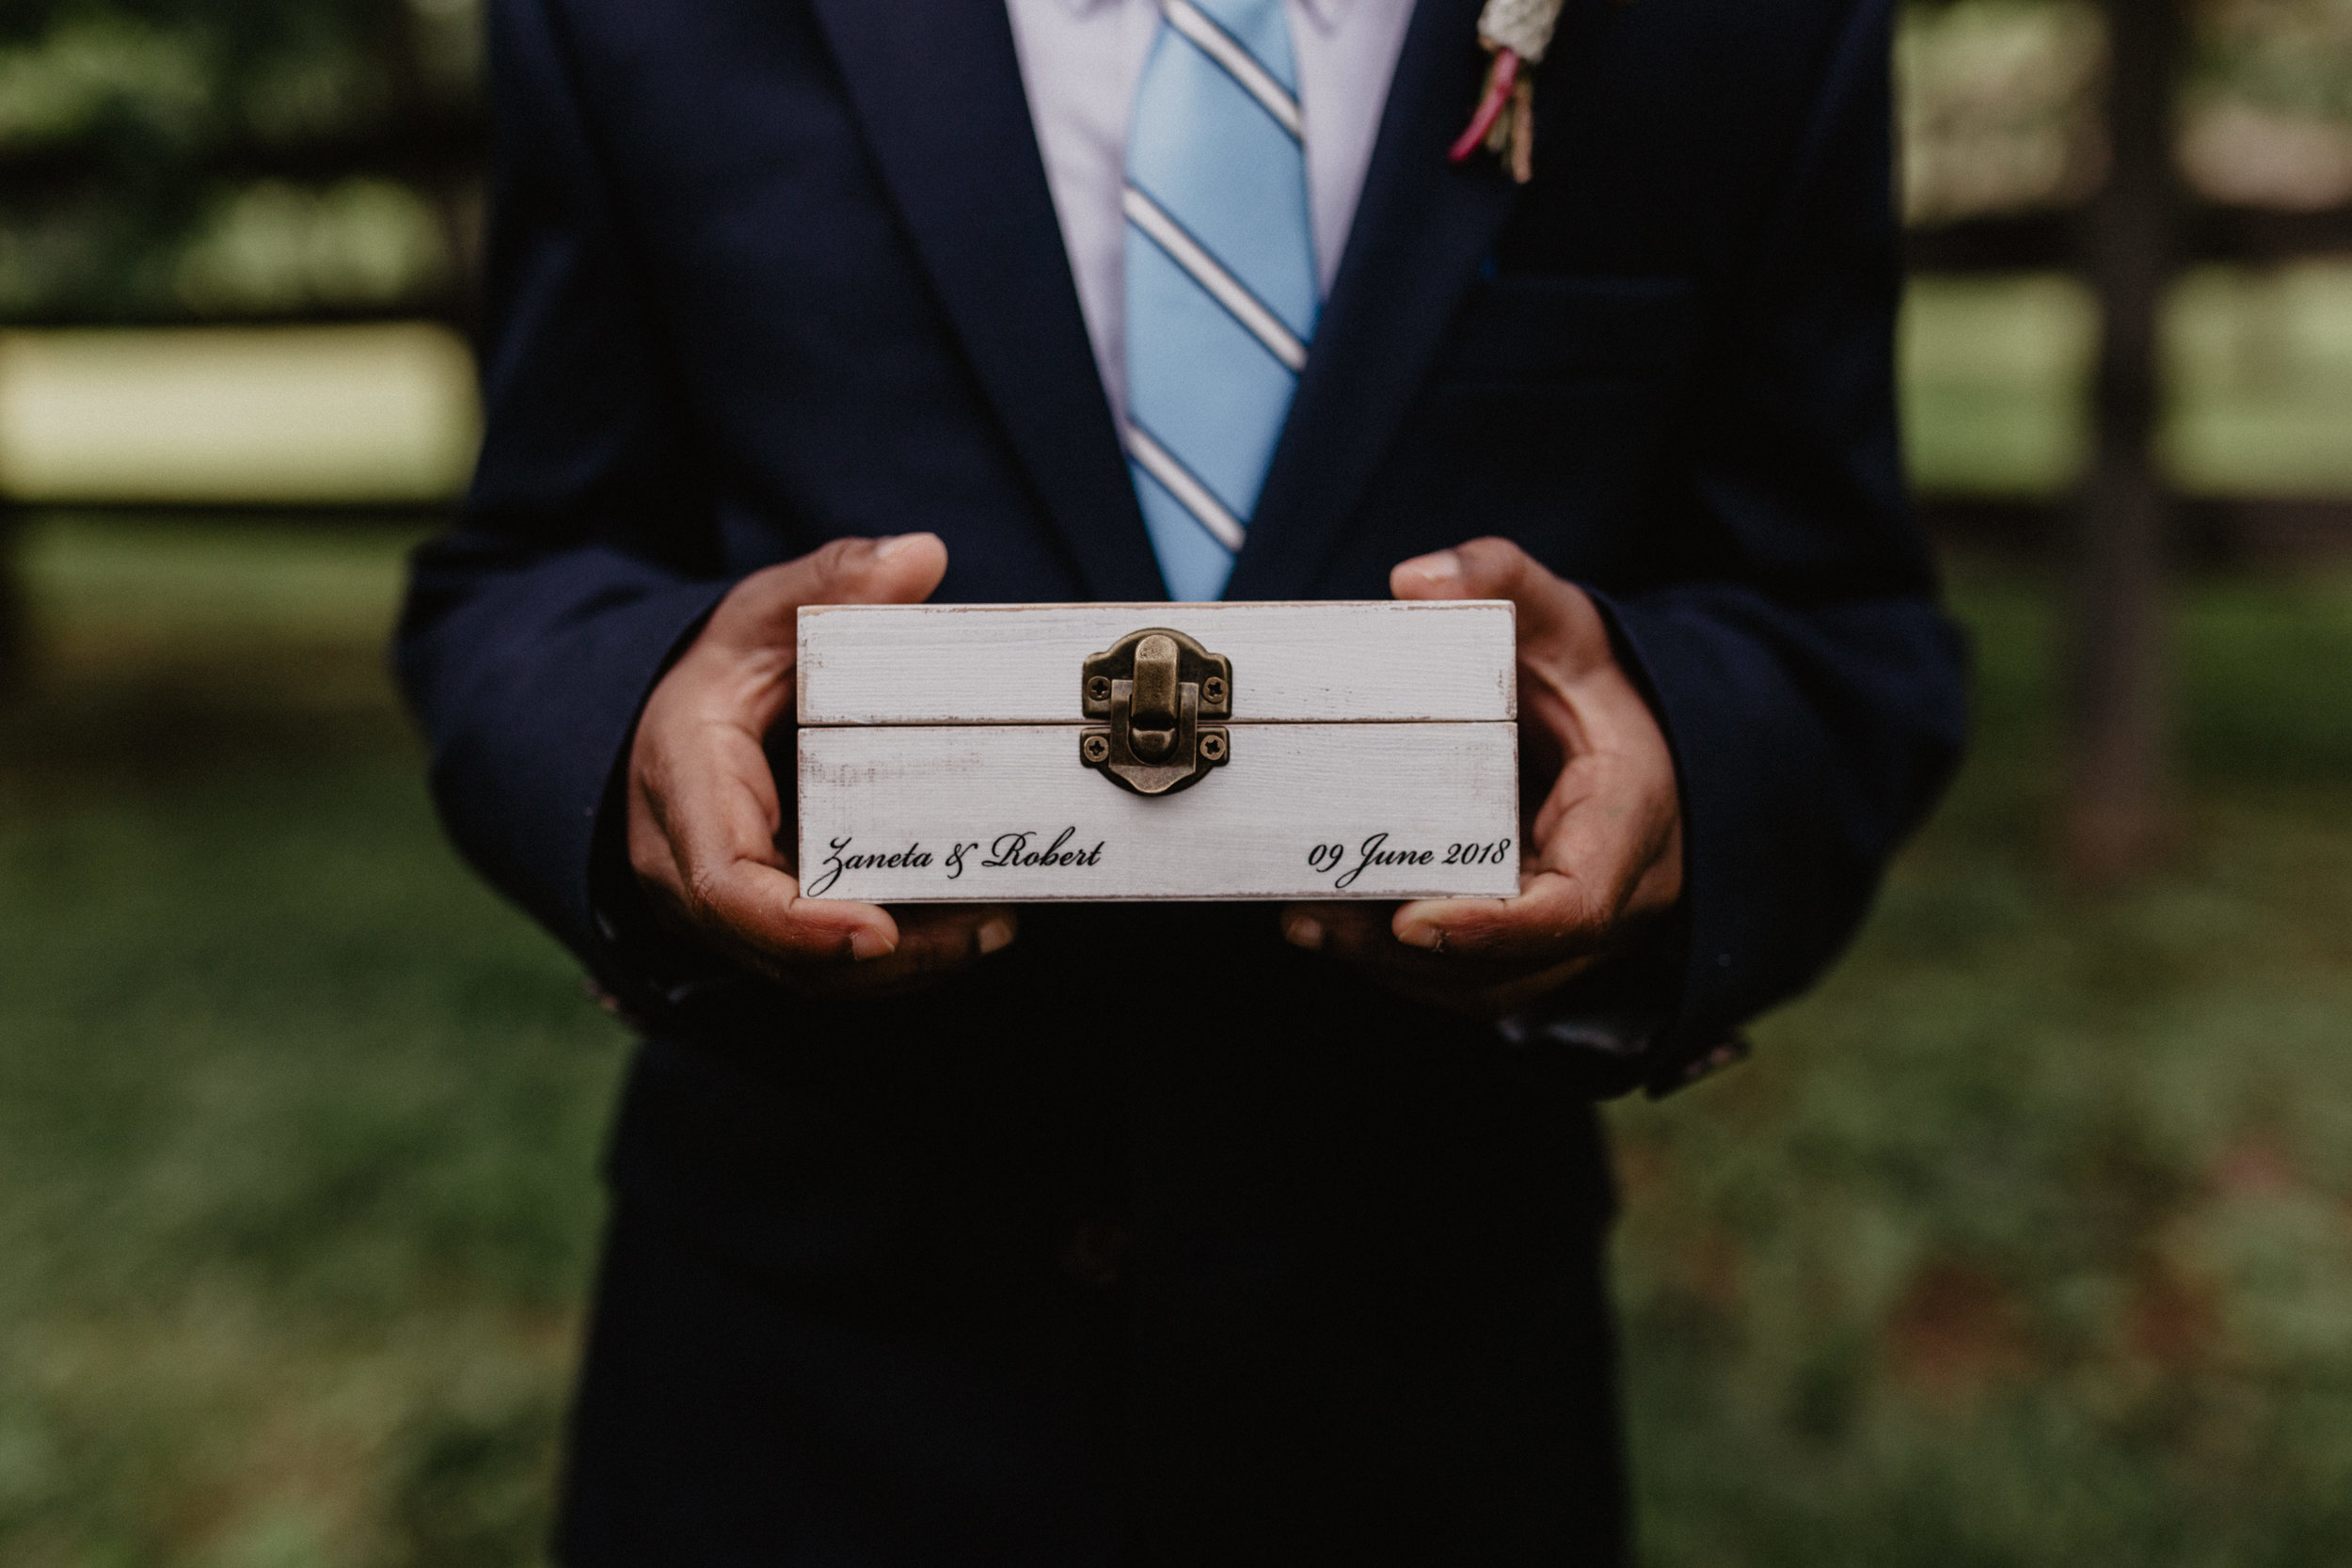 stablegate_farm_and_vineyard_wedding_028.jpg